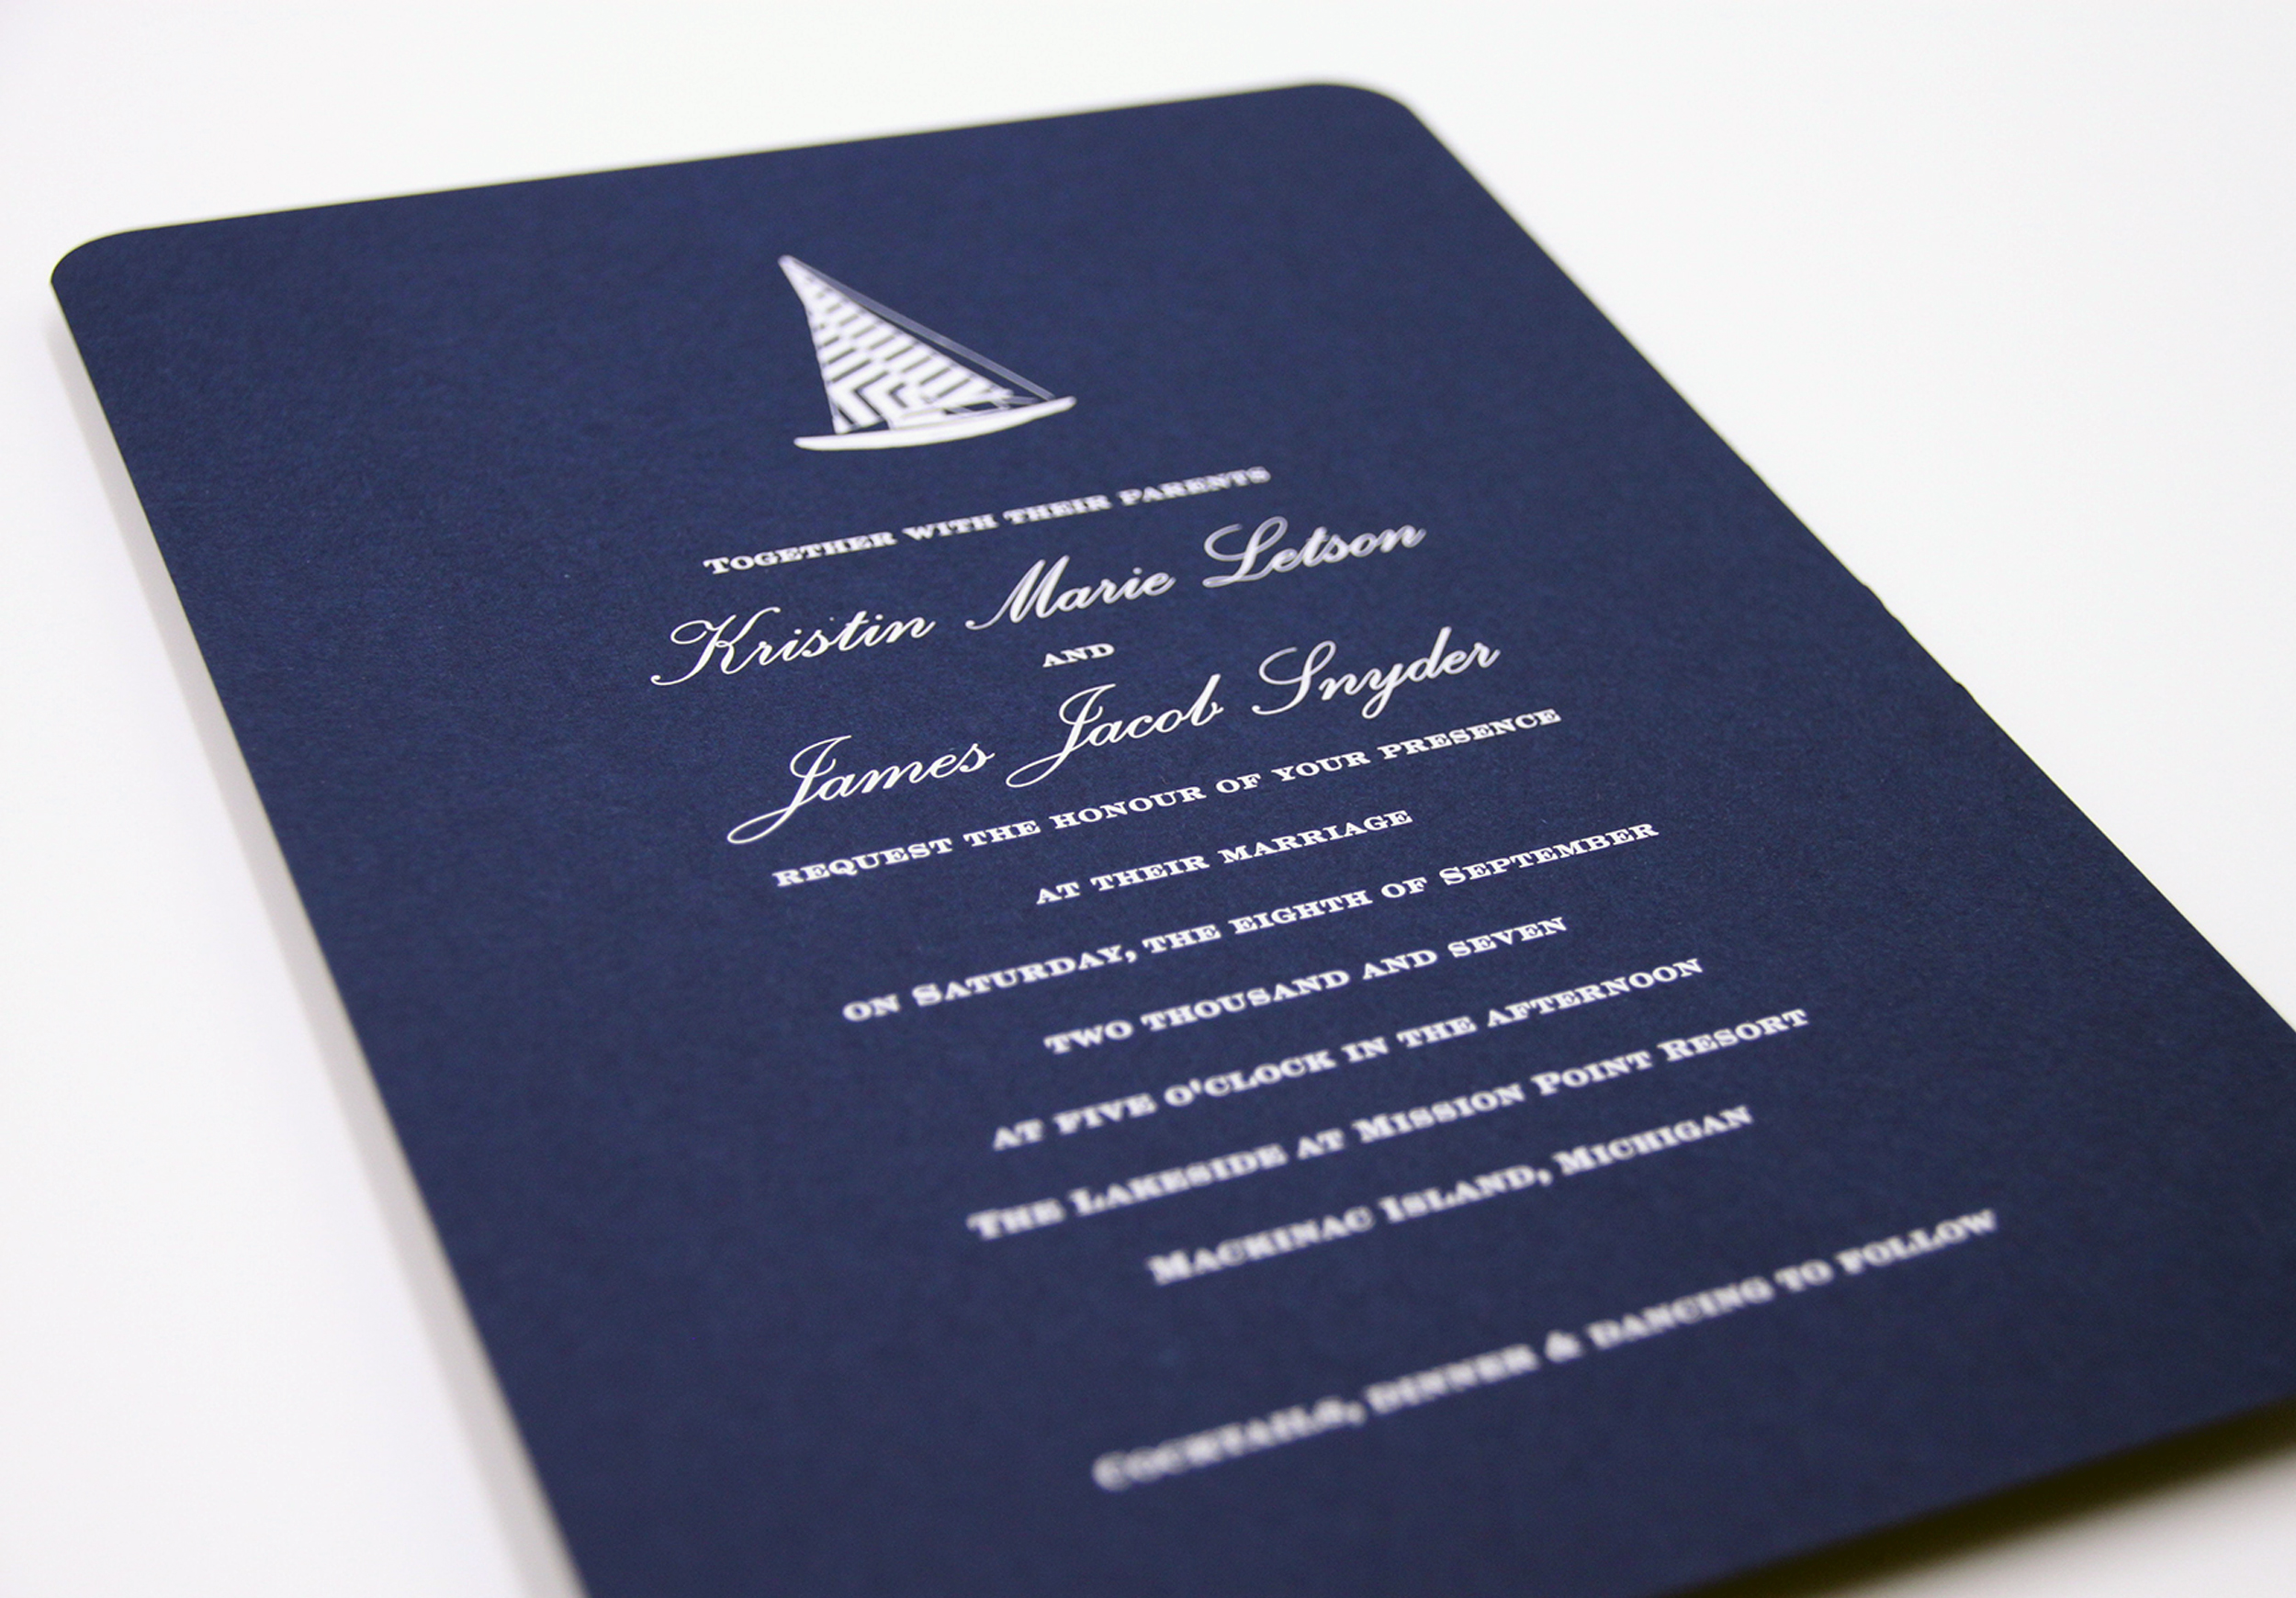 Nautical inspired wedding invitation with custom sailboat motif. Engraved in white ink on navy linen paper.